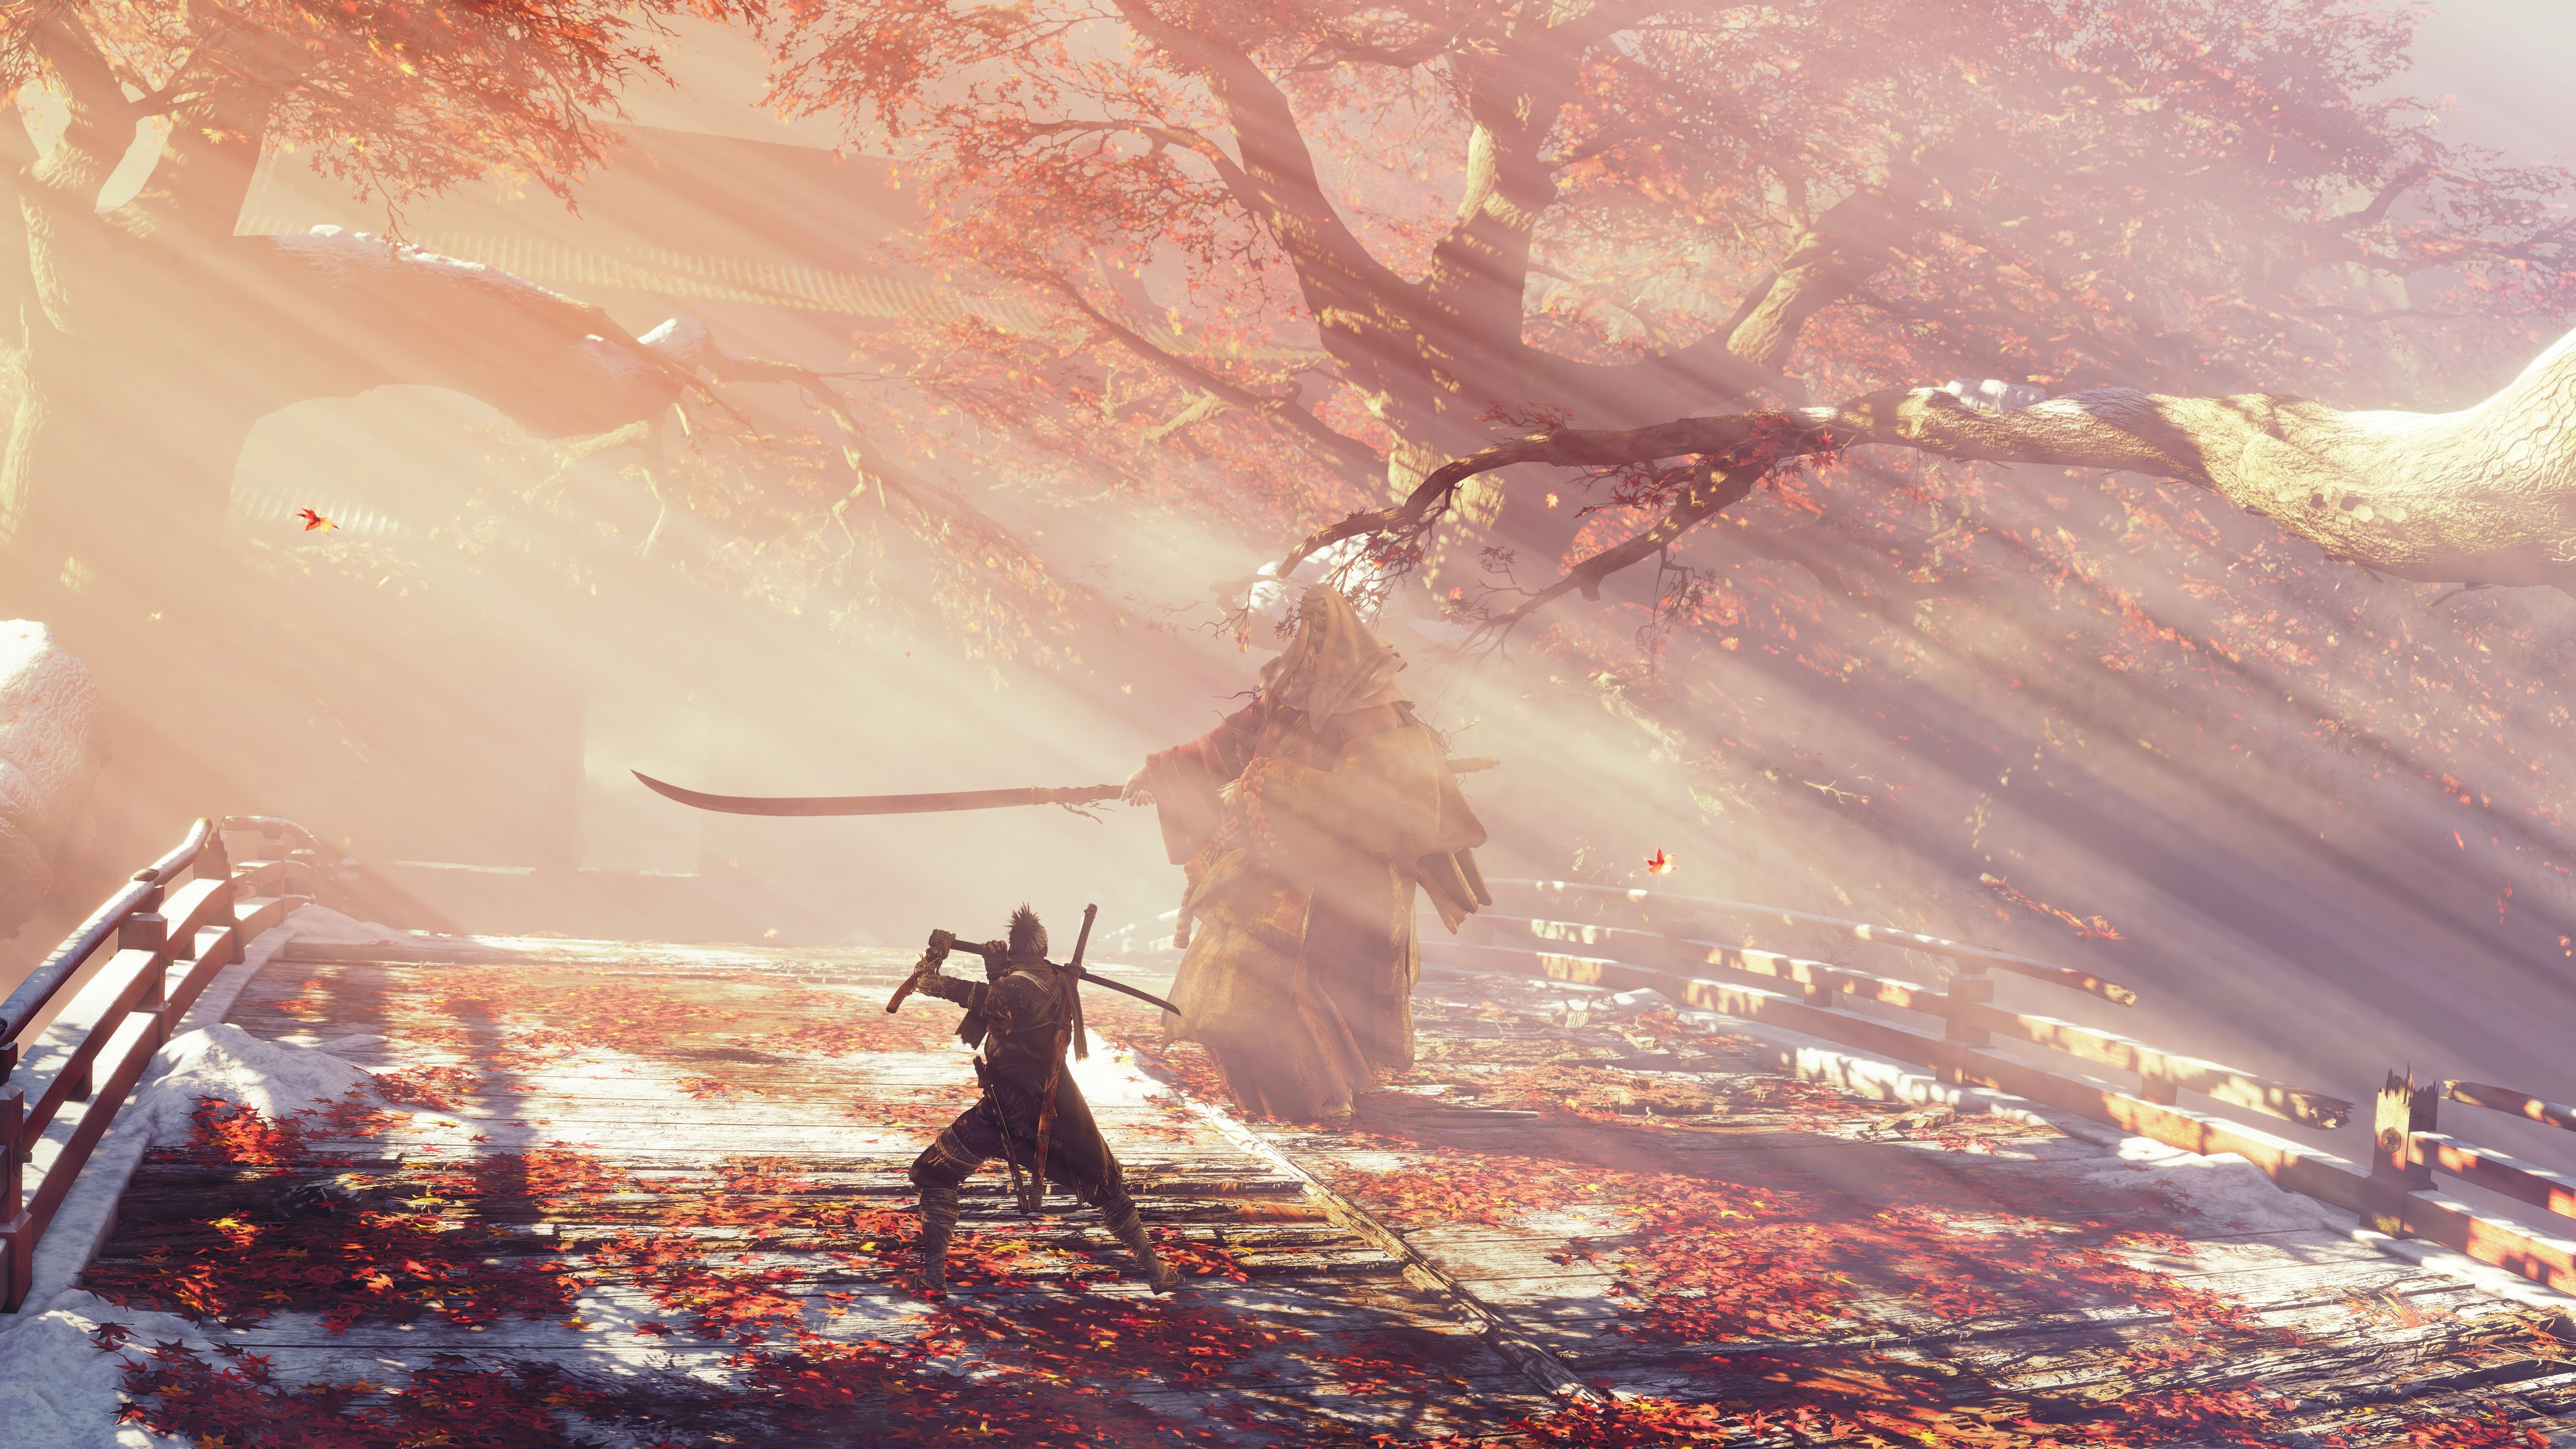 Sekiro Shadows Die Twice 4k Sekiro Shadows Die Twice Wallpapers Hd Wallpapers Games Wallpapers 4k Wallpapers Samurai Wallpaper Asian Landscape Hd Wallpaper